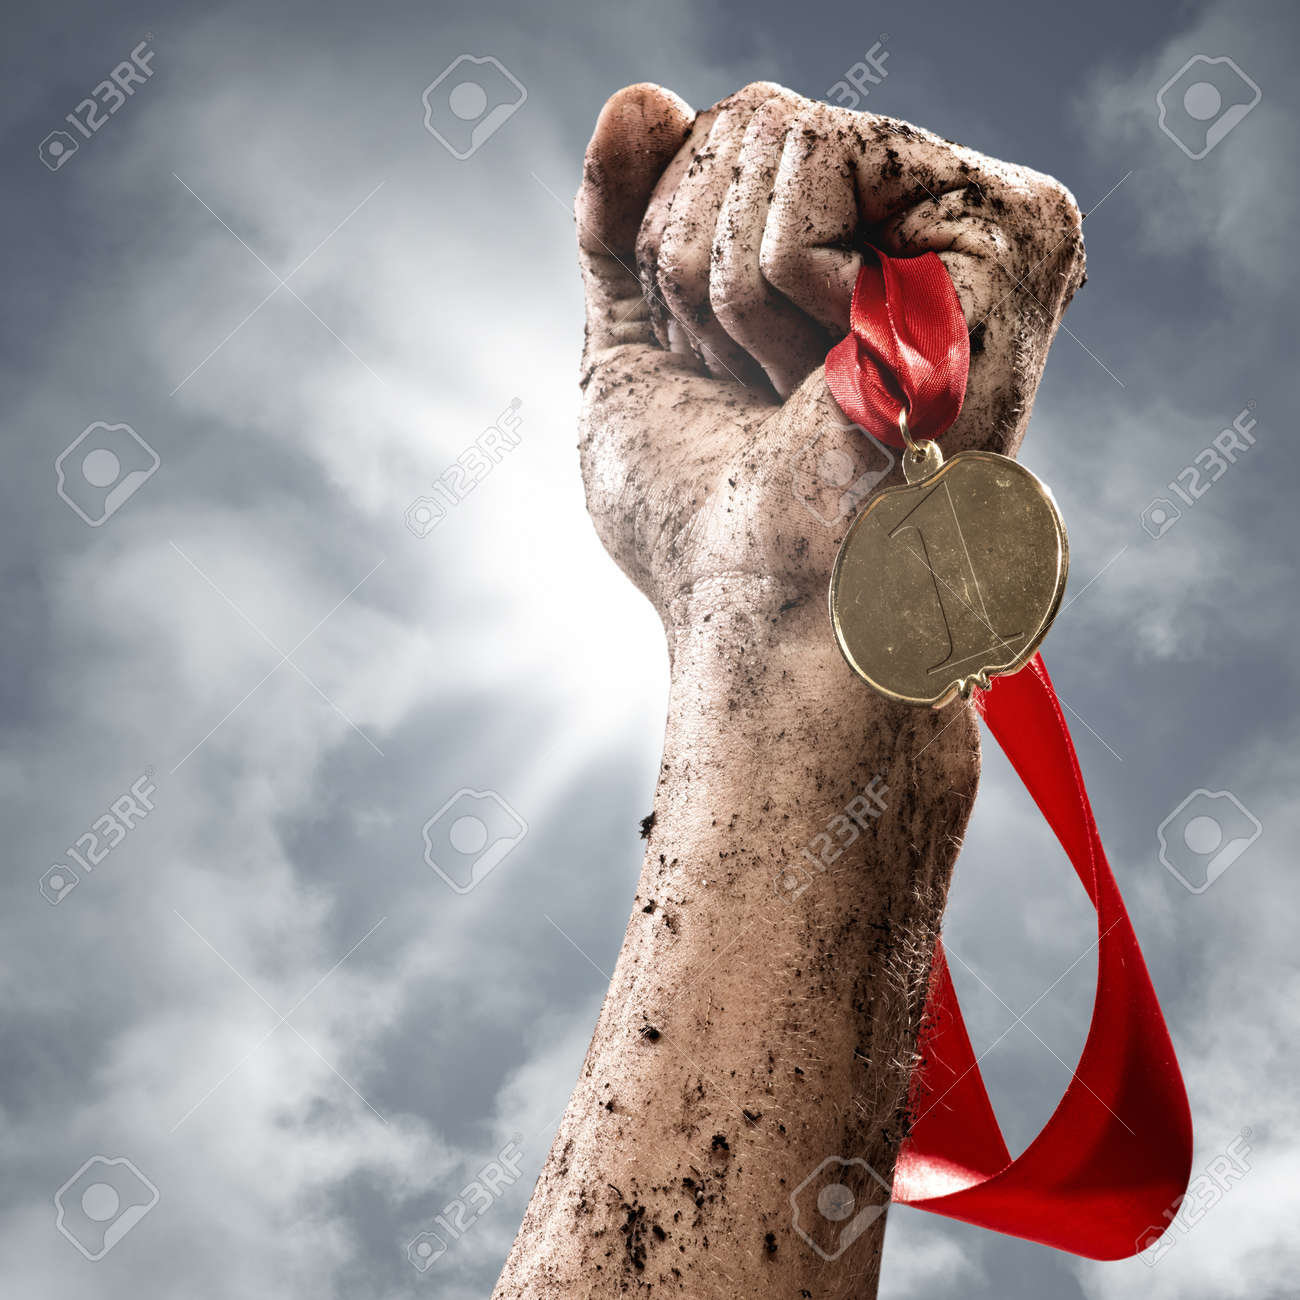 hand holding a winner s medal, success in competitions - 19287057